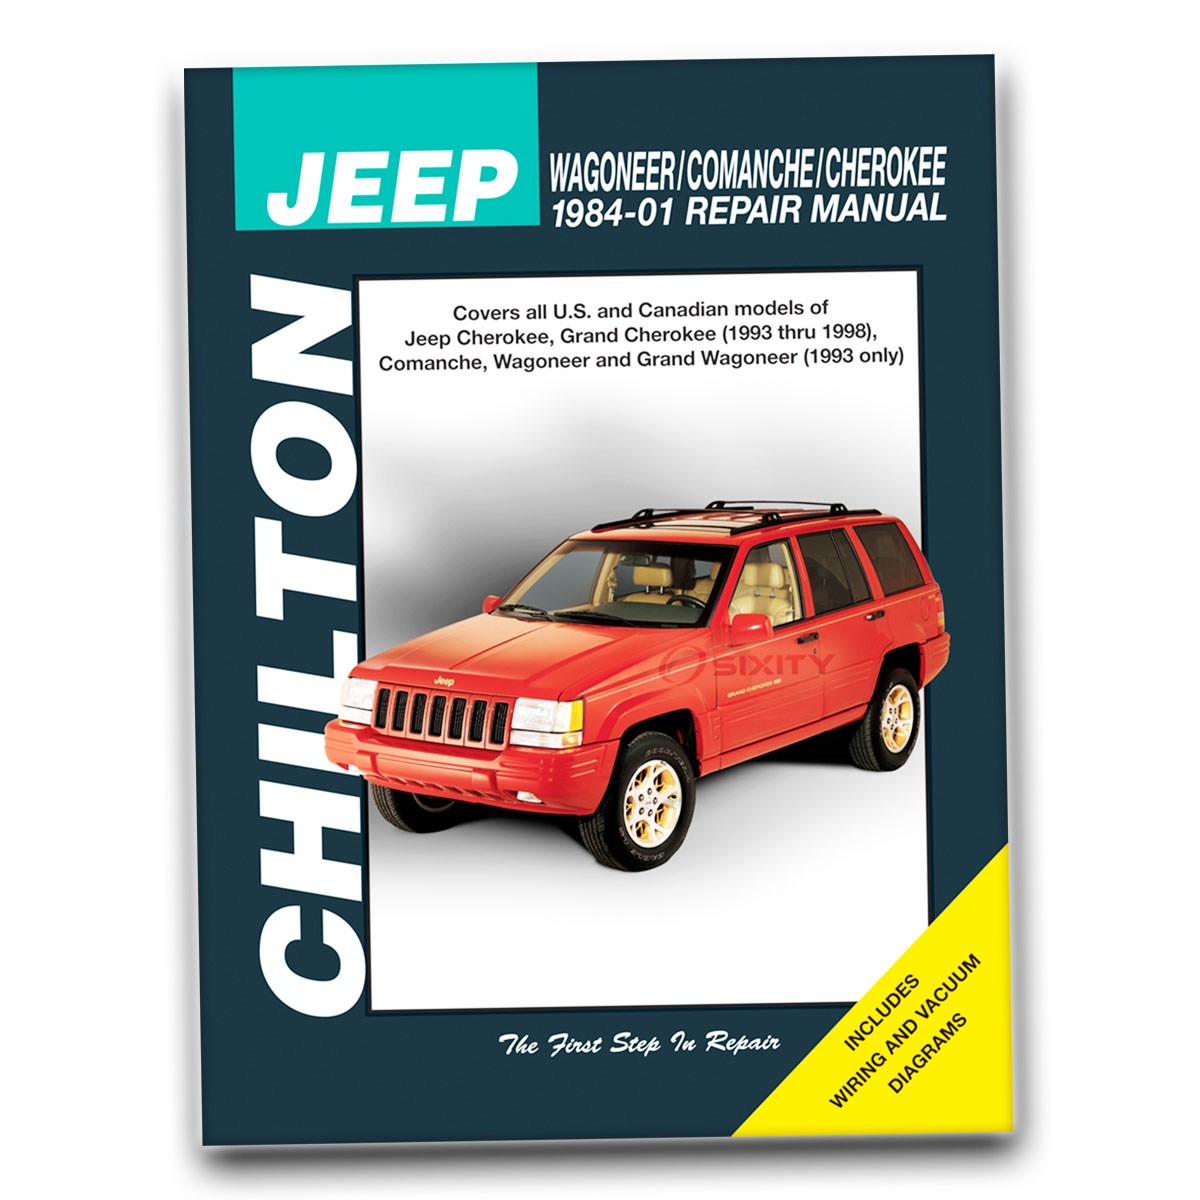 Chilton Repair Manual for Jeep Cherokee Classic Briarwood Country Limited zw